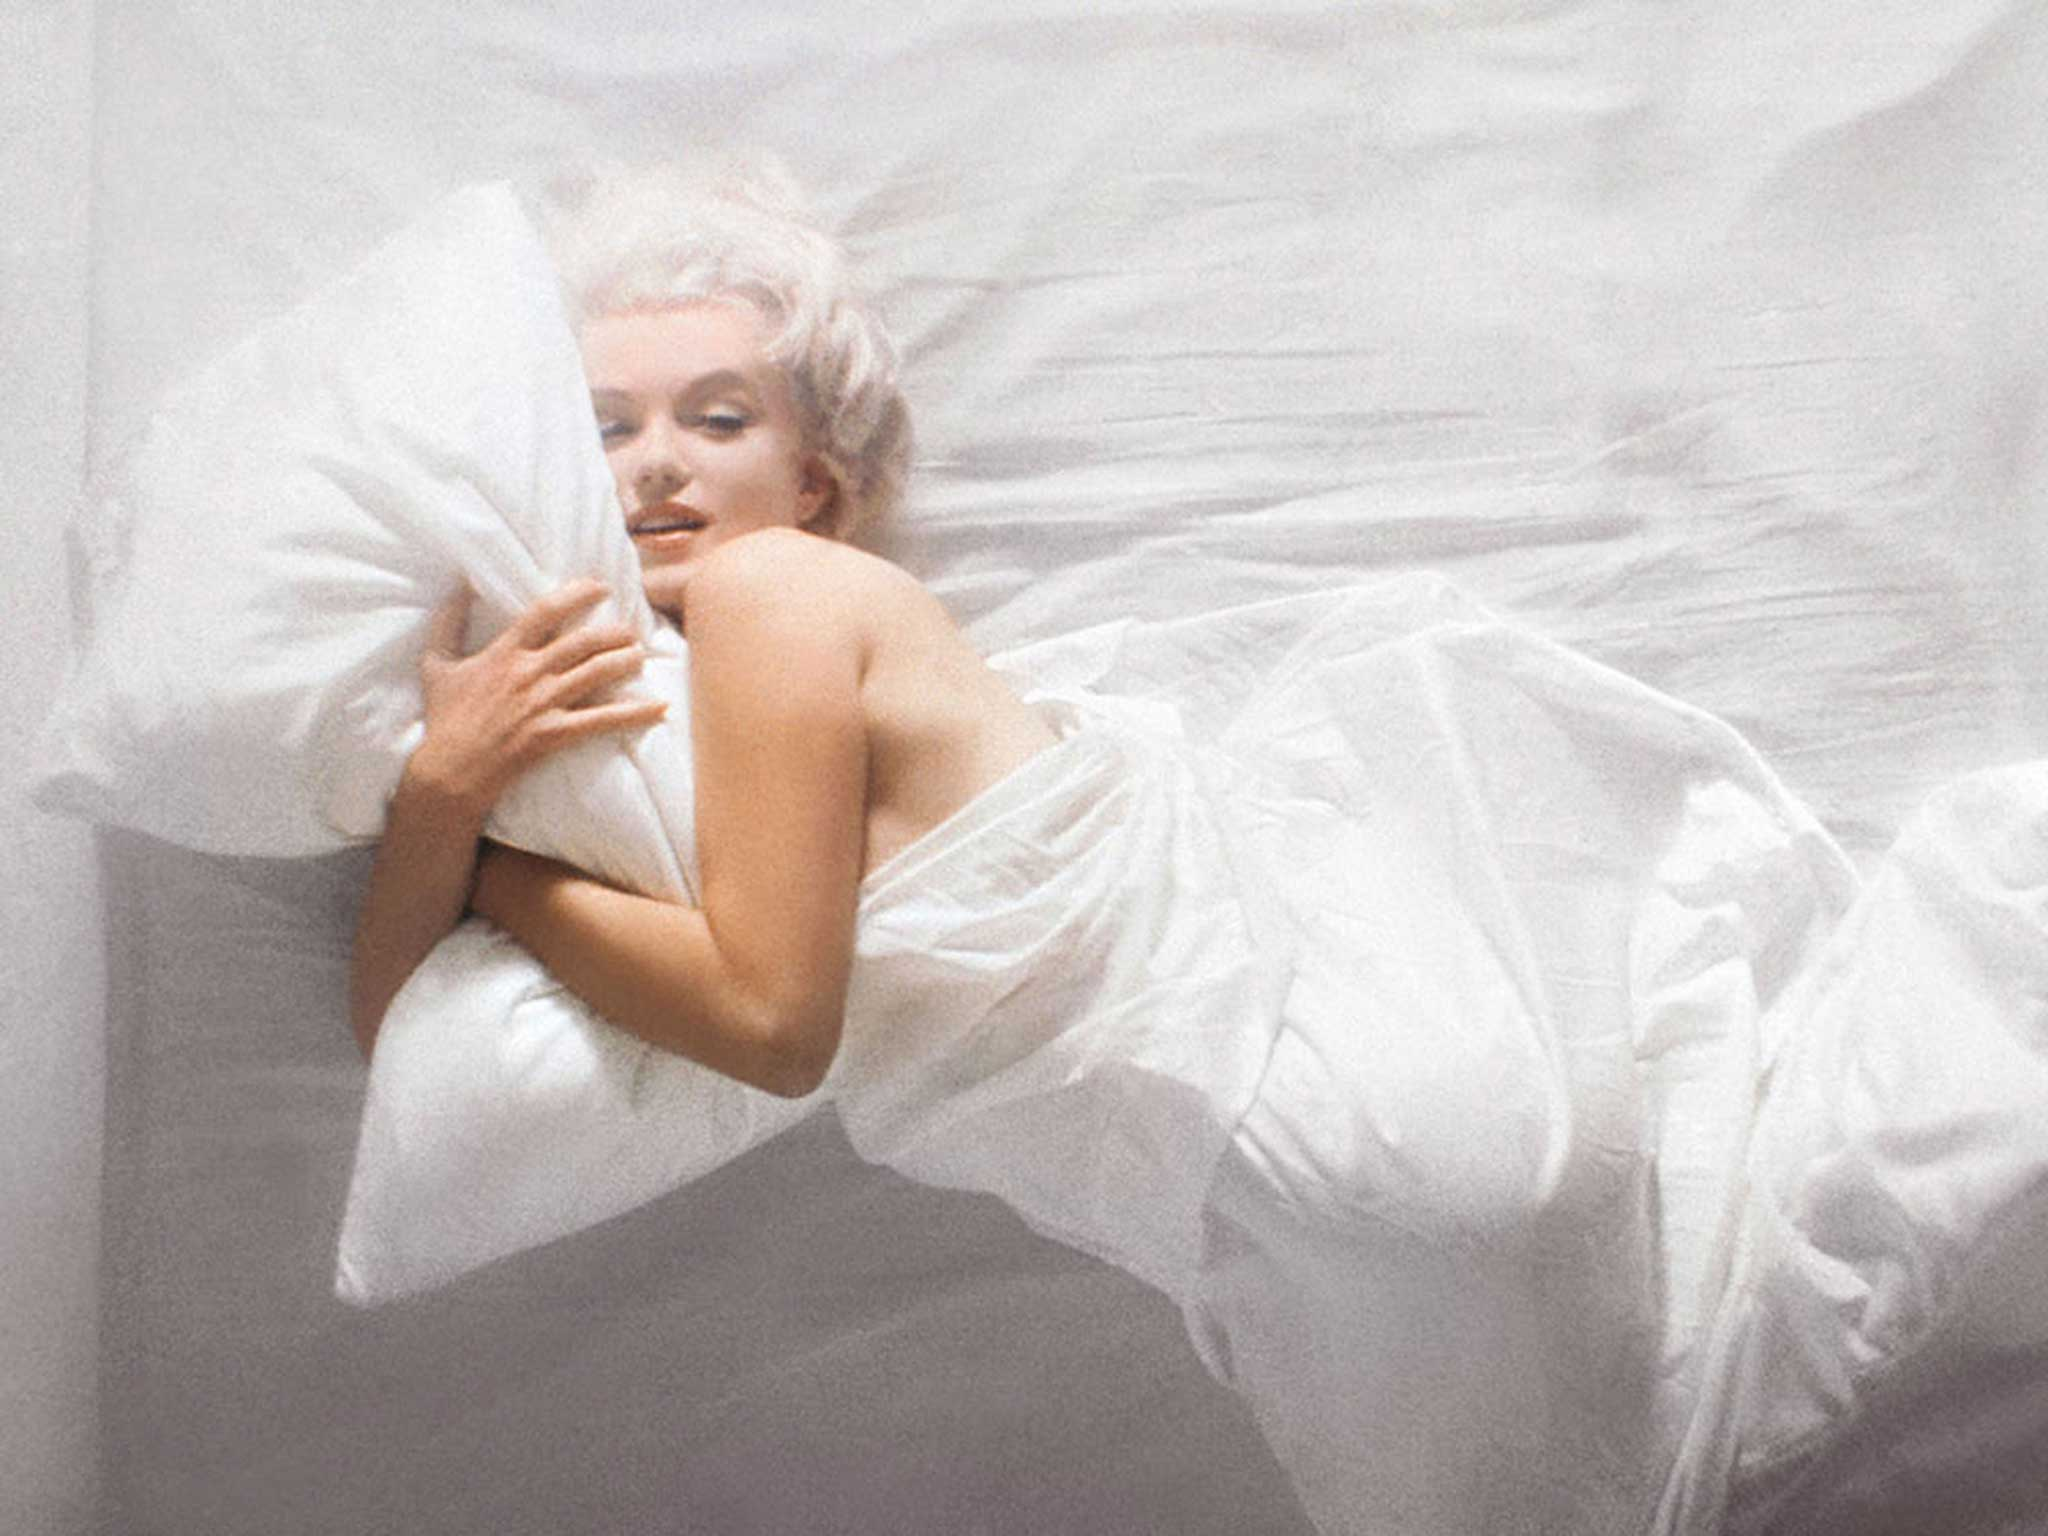 Marilyn Monroe nude in bed wrapped in sheets